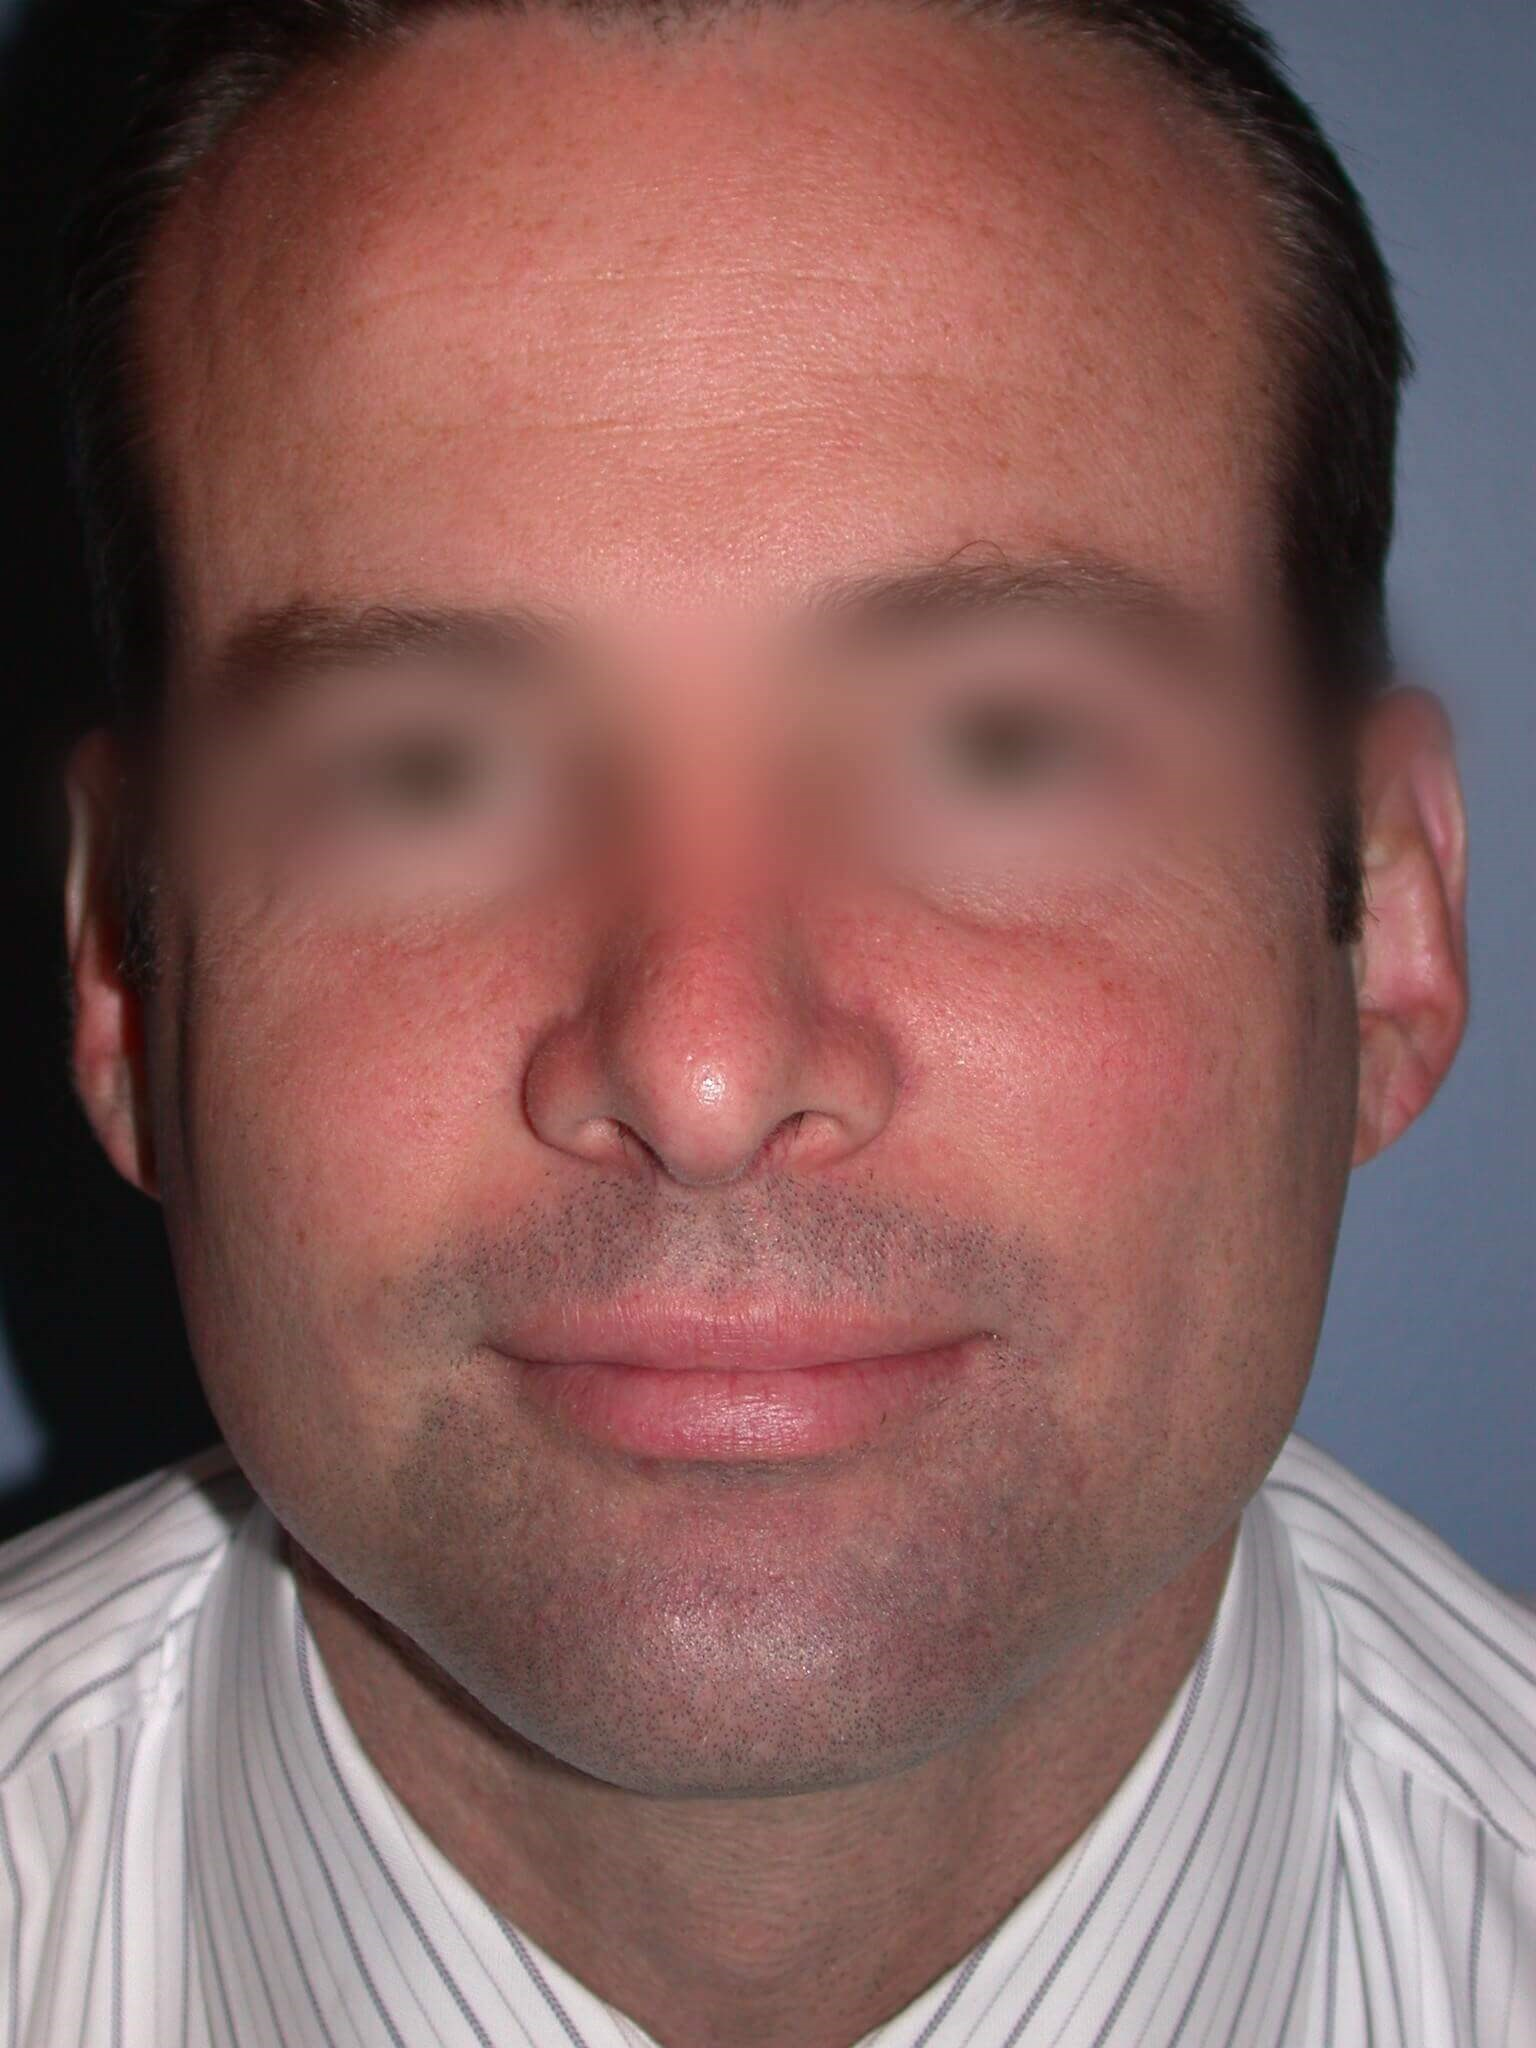 Rhinoplasty Front View After